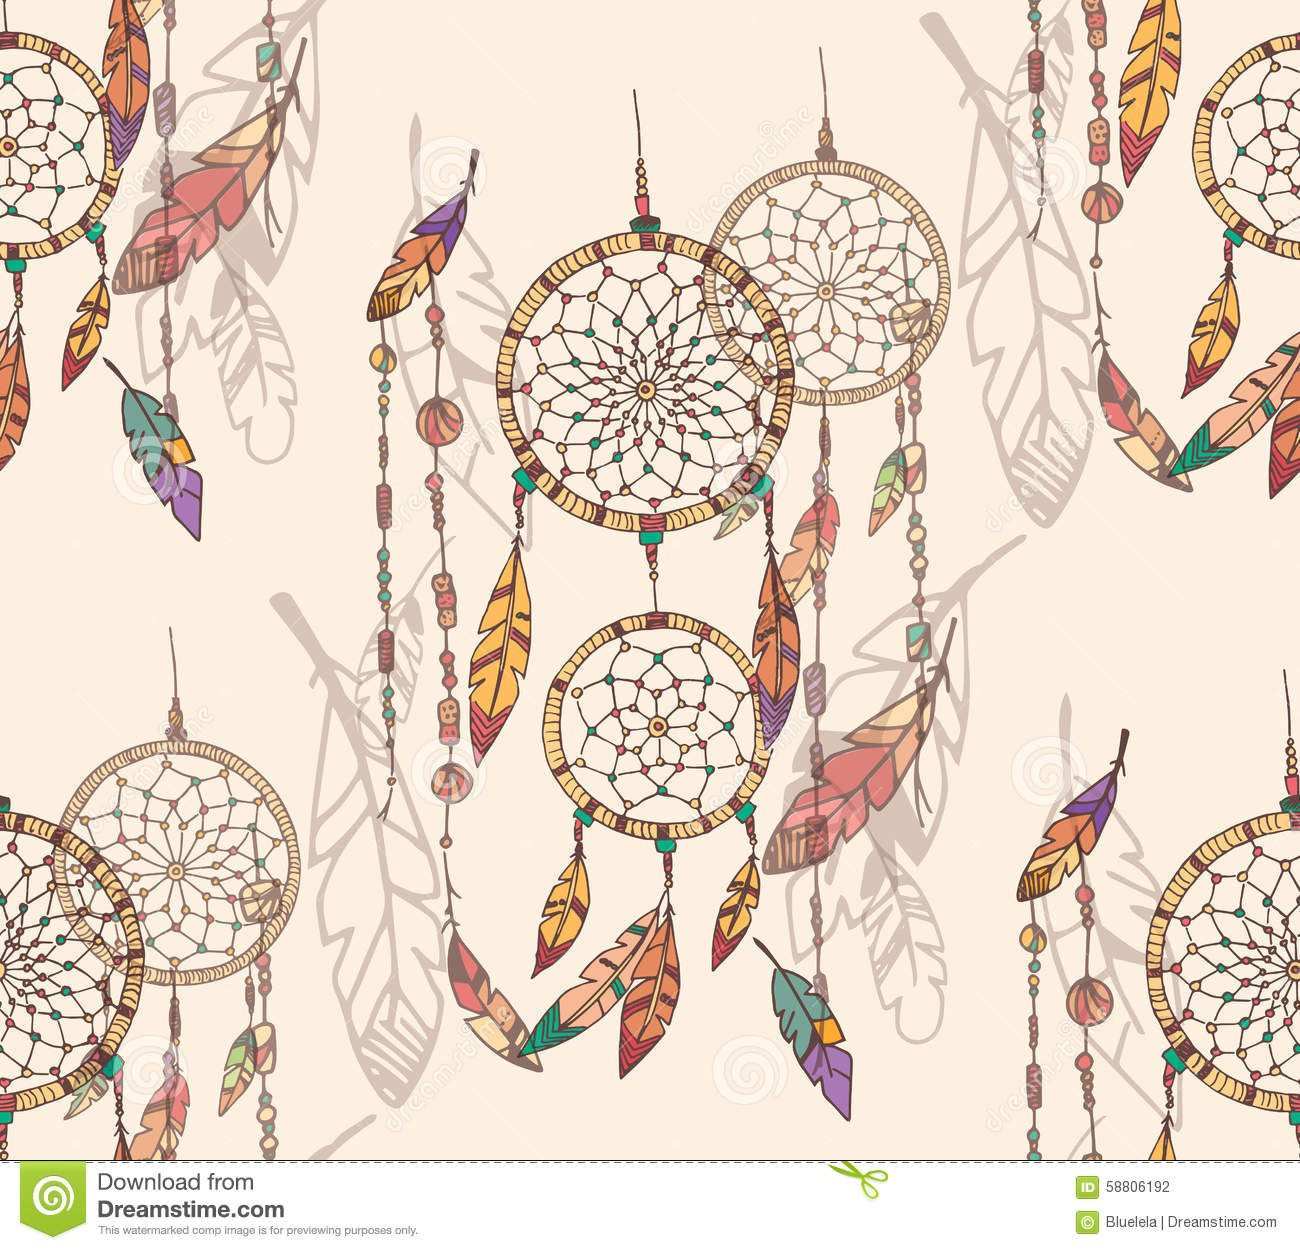 Bohemian Dream Catcher With Beads And Feathers Seamless Pattern Stock Vector Illustration Of Ethnic Elements 58806192